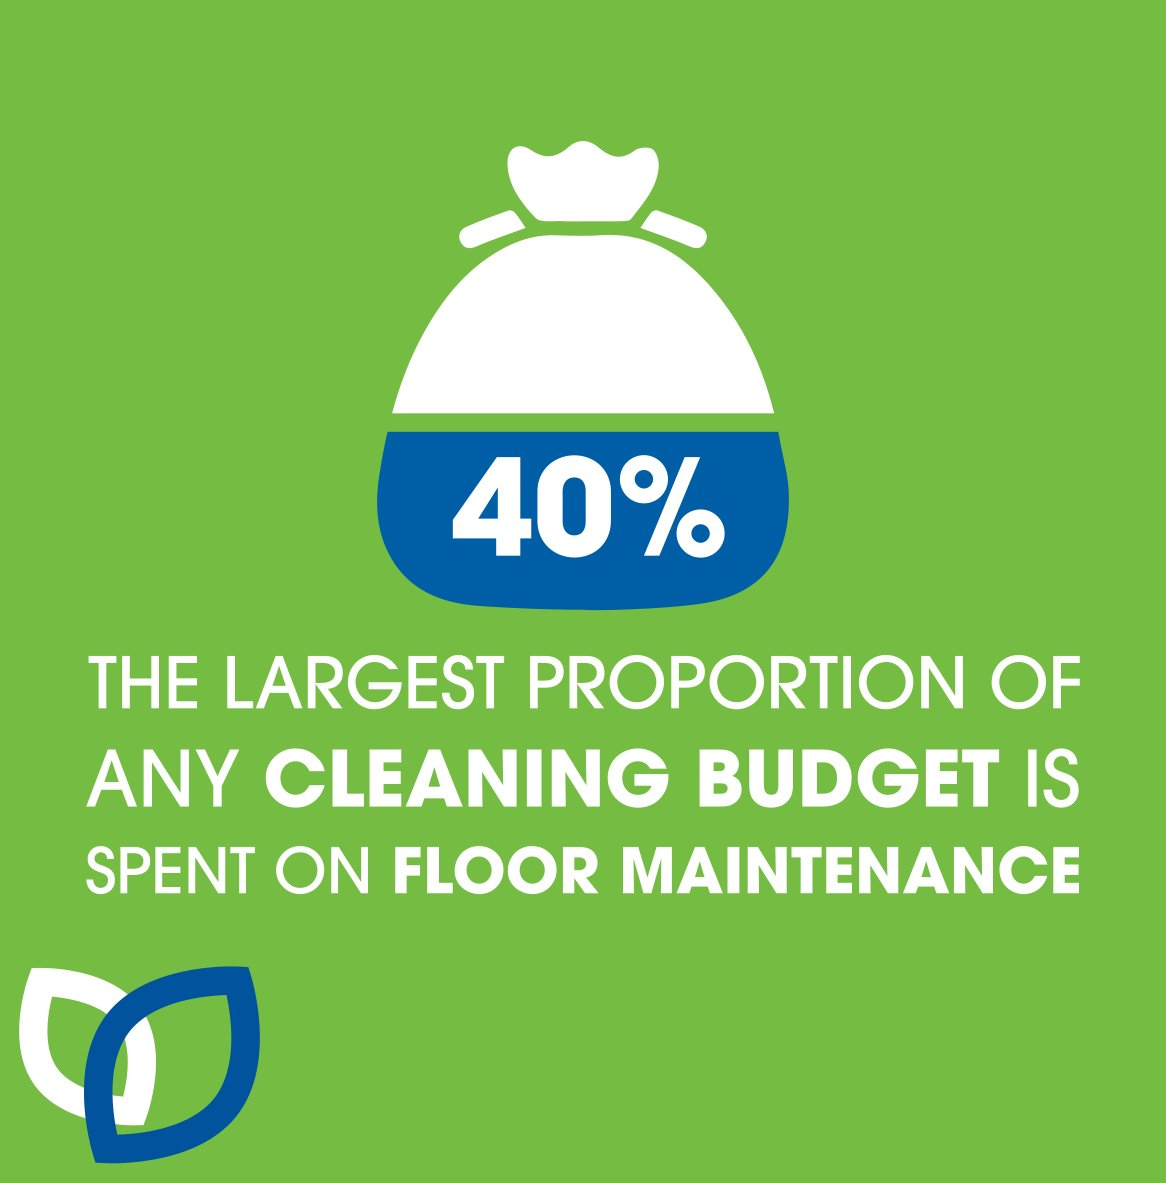 Stats graphic showing 40% of cleaning budget it spent on floor maintenance